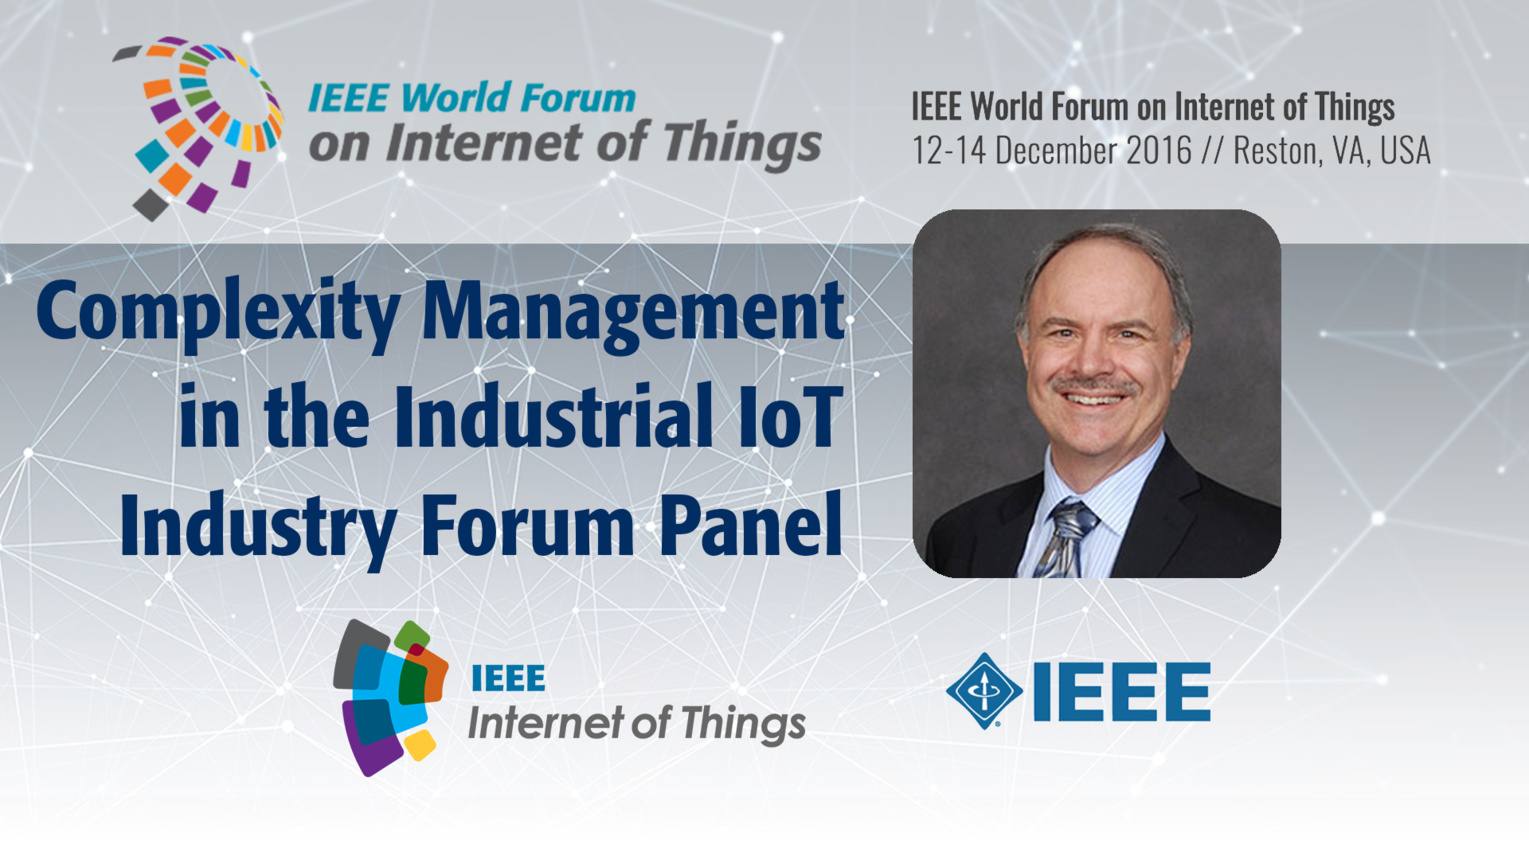 Stan Schneider: Complexity Management in the Industrial IoT - IoT Challenges Industry Forum Panel: WF IoT 2016